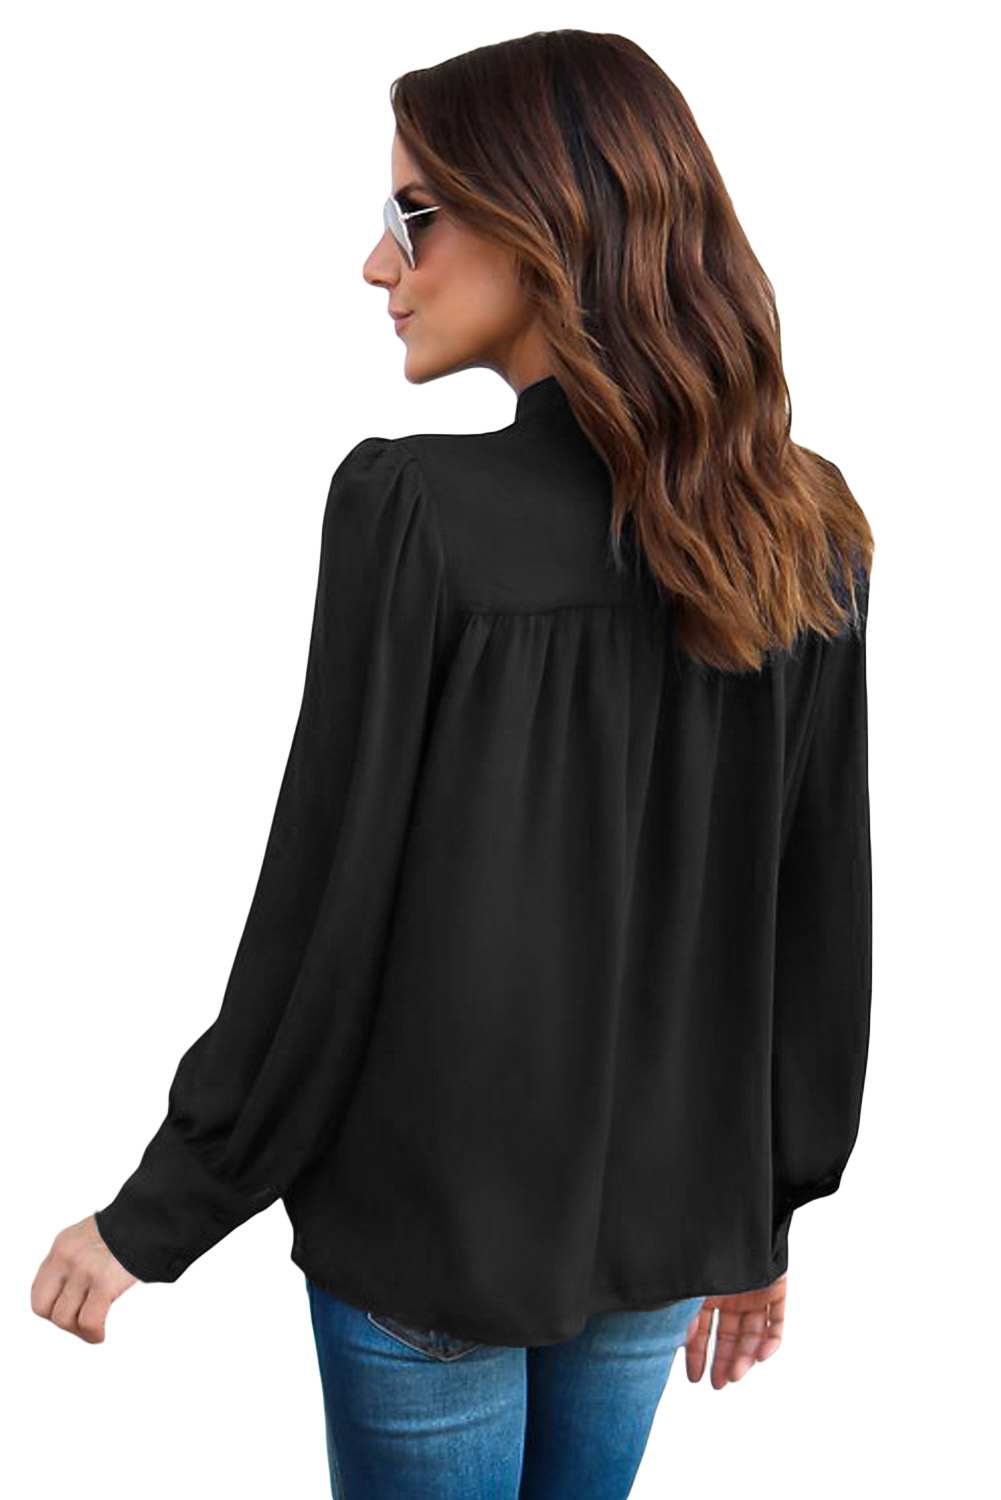 M - Womens Clothing Online Cheap Clothes